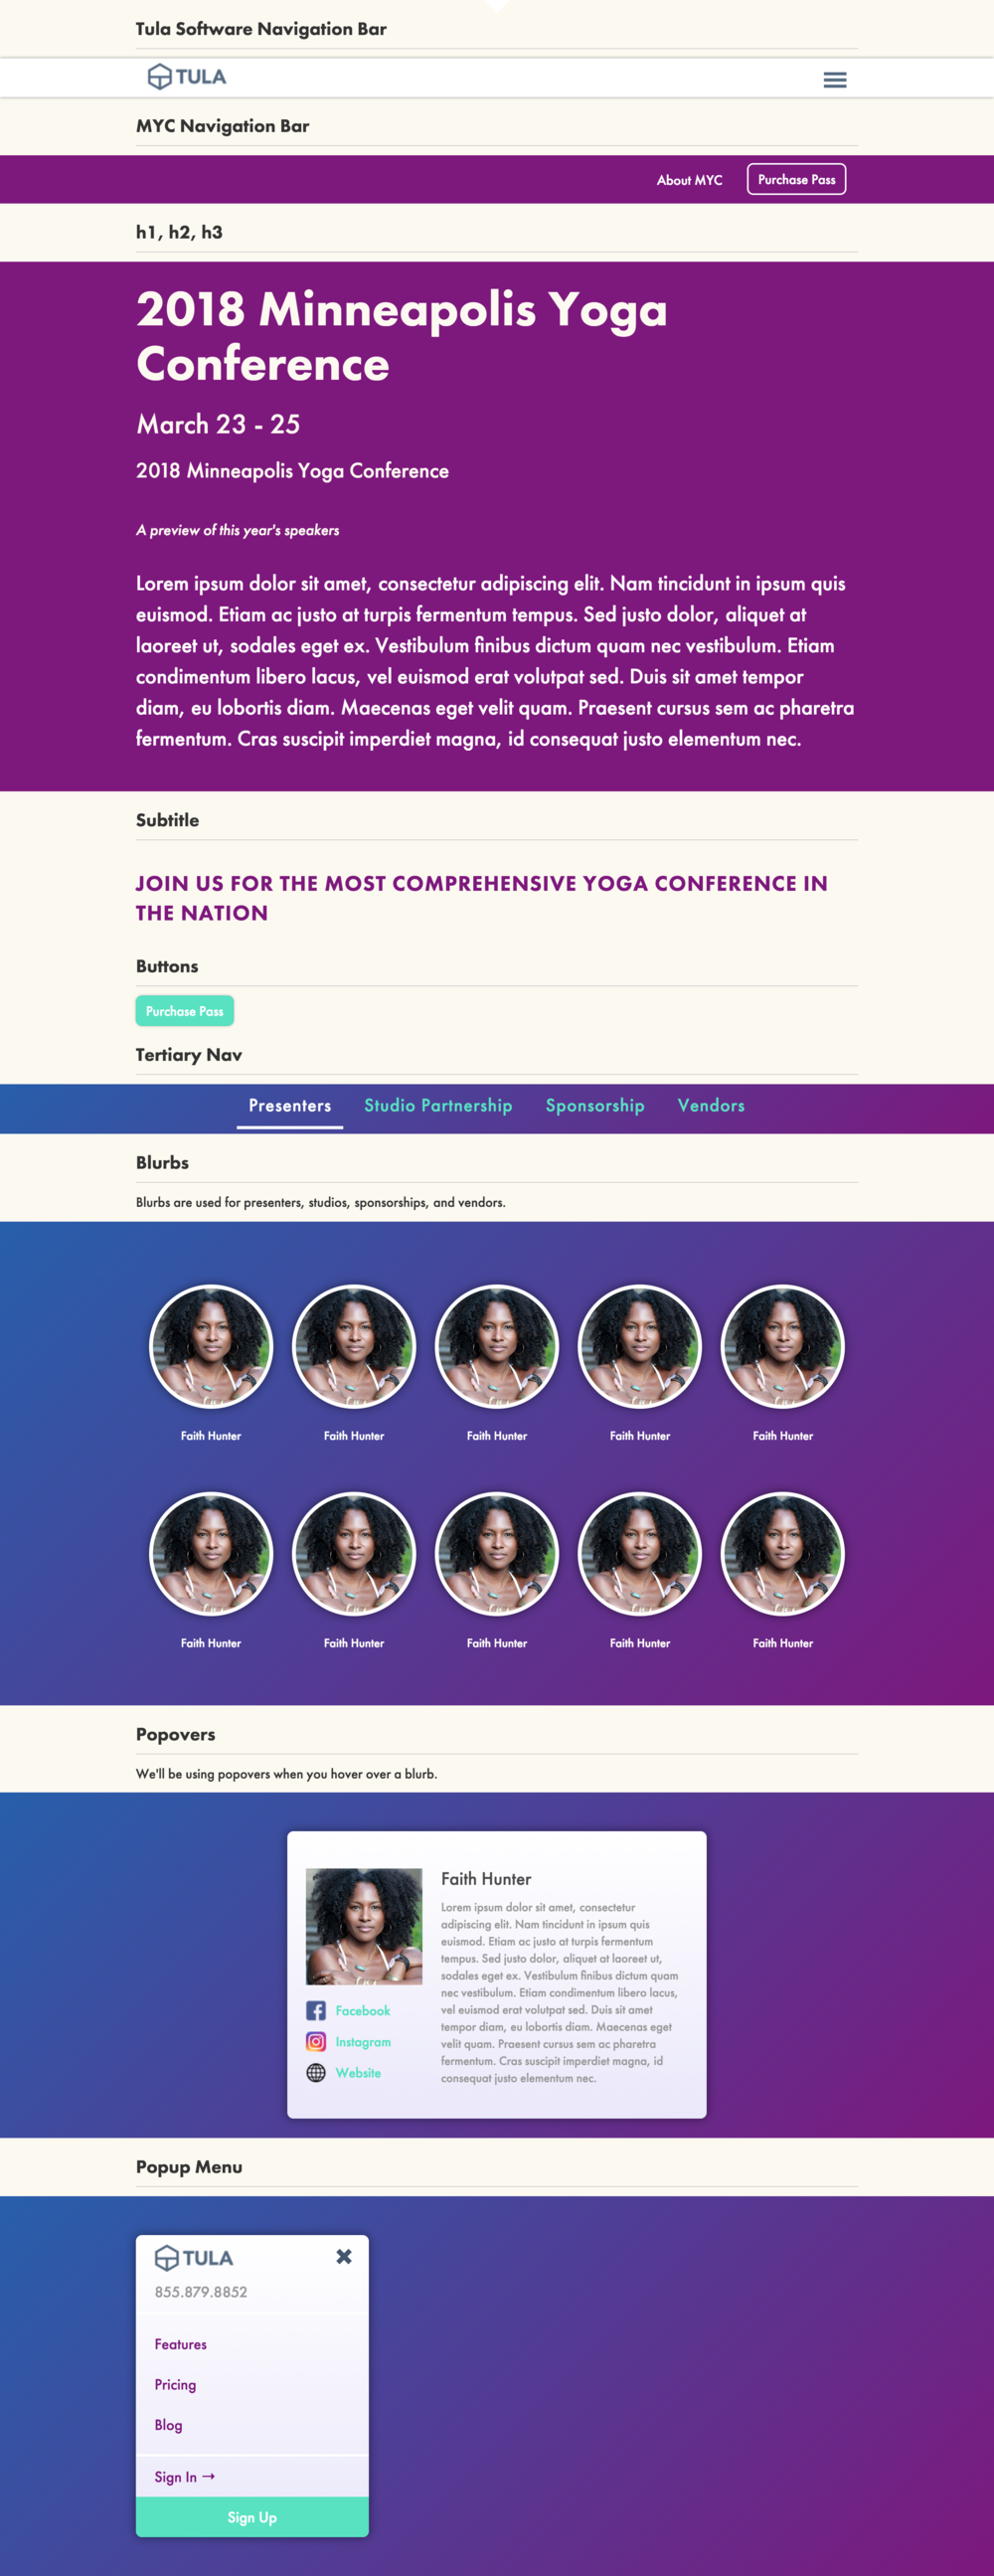 Before we started building the Minneapolis Yoga Conference website, we translated the design into a style guide. These components were the pieces we needed to finish the puzzle.